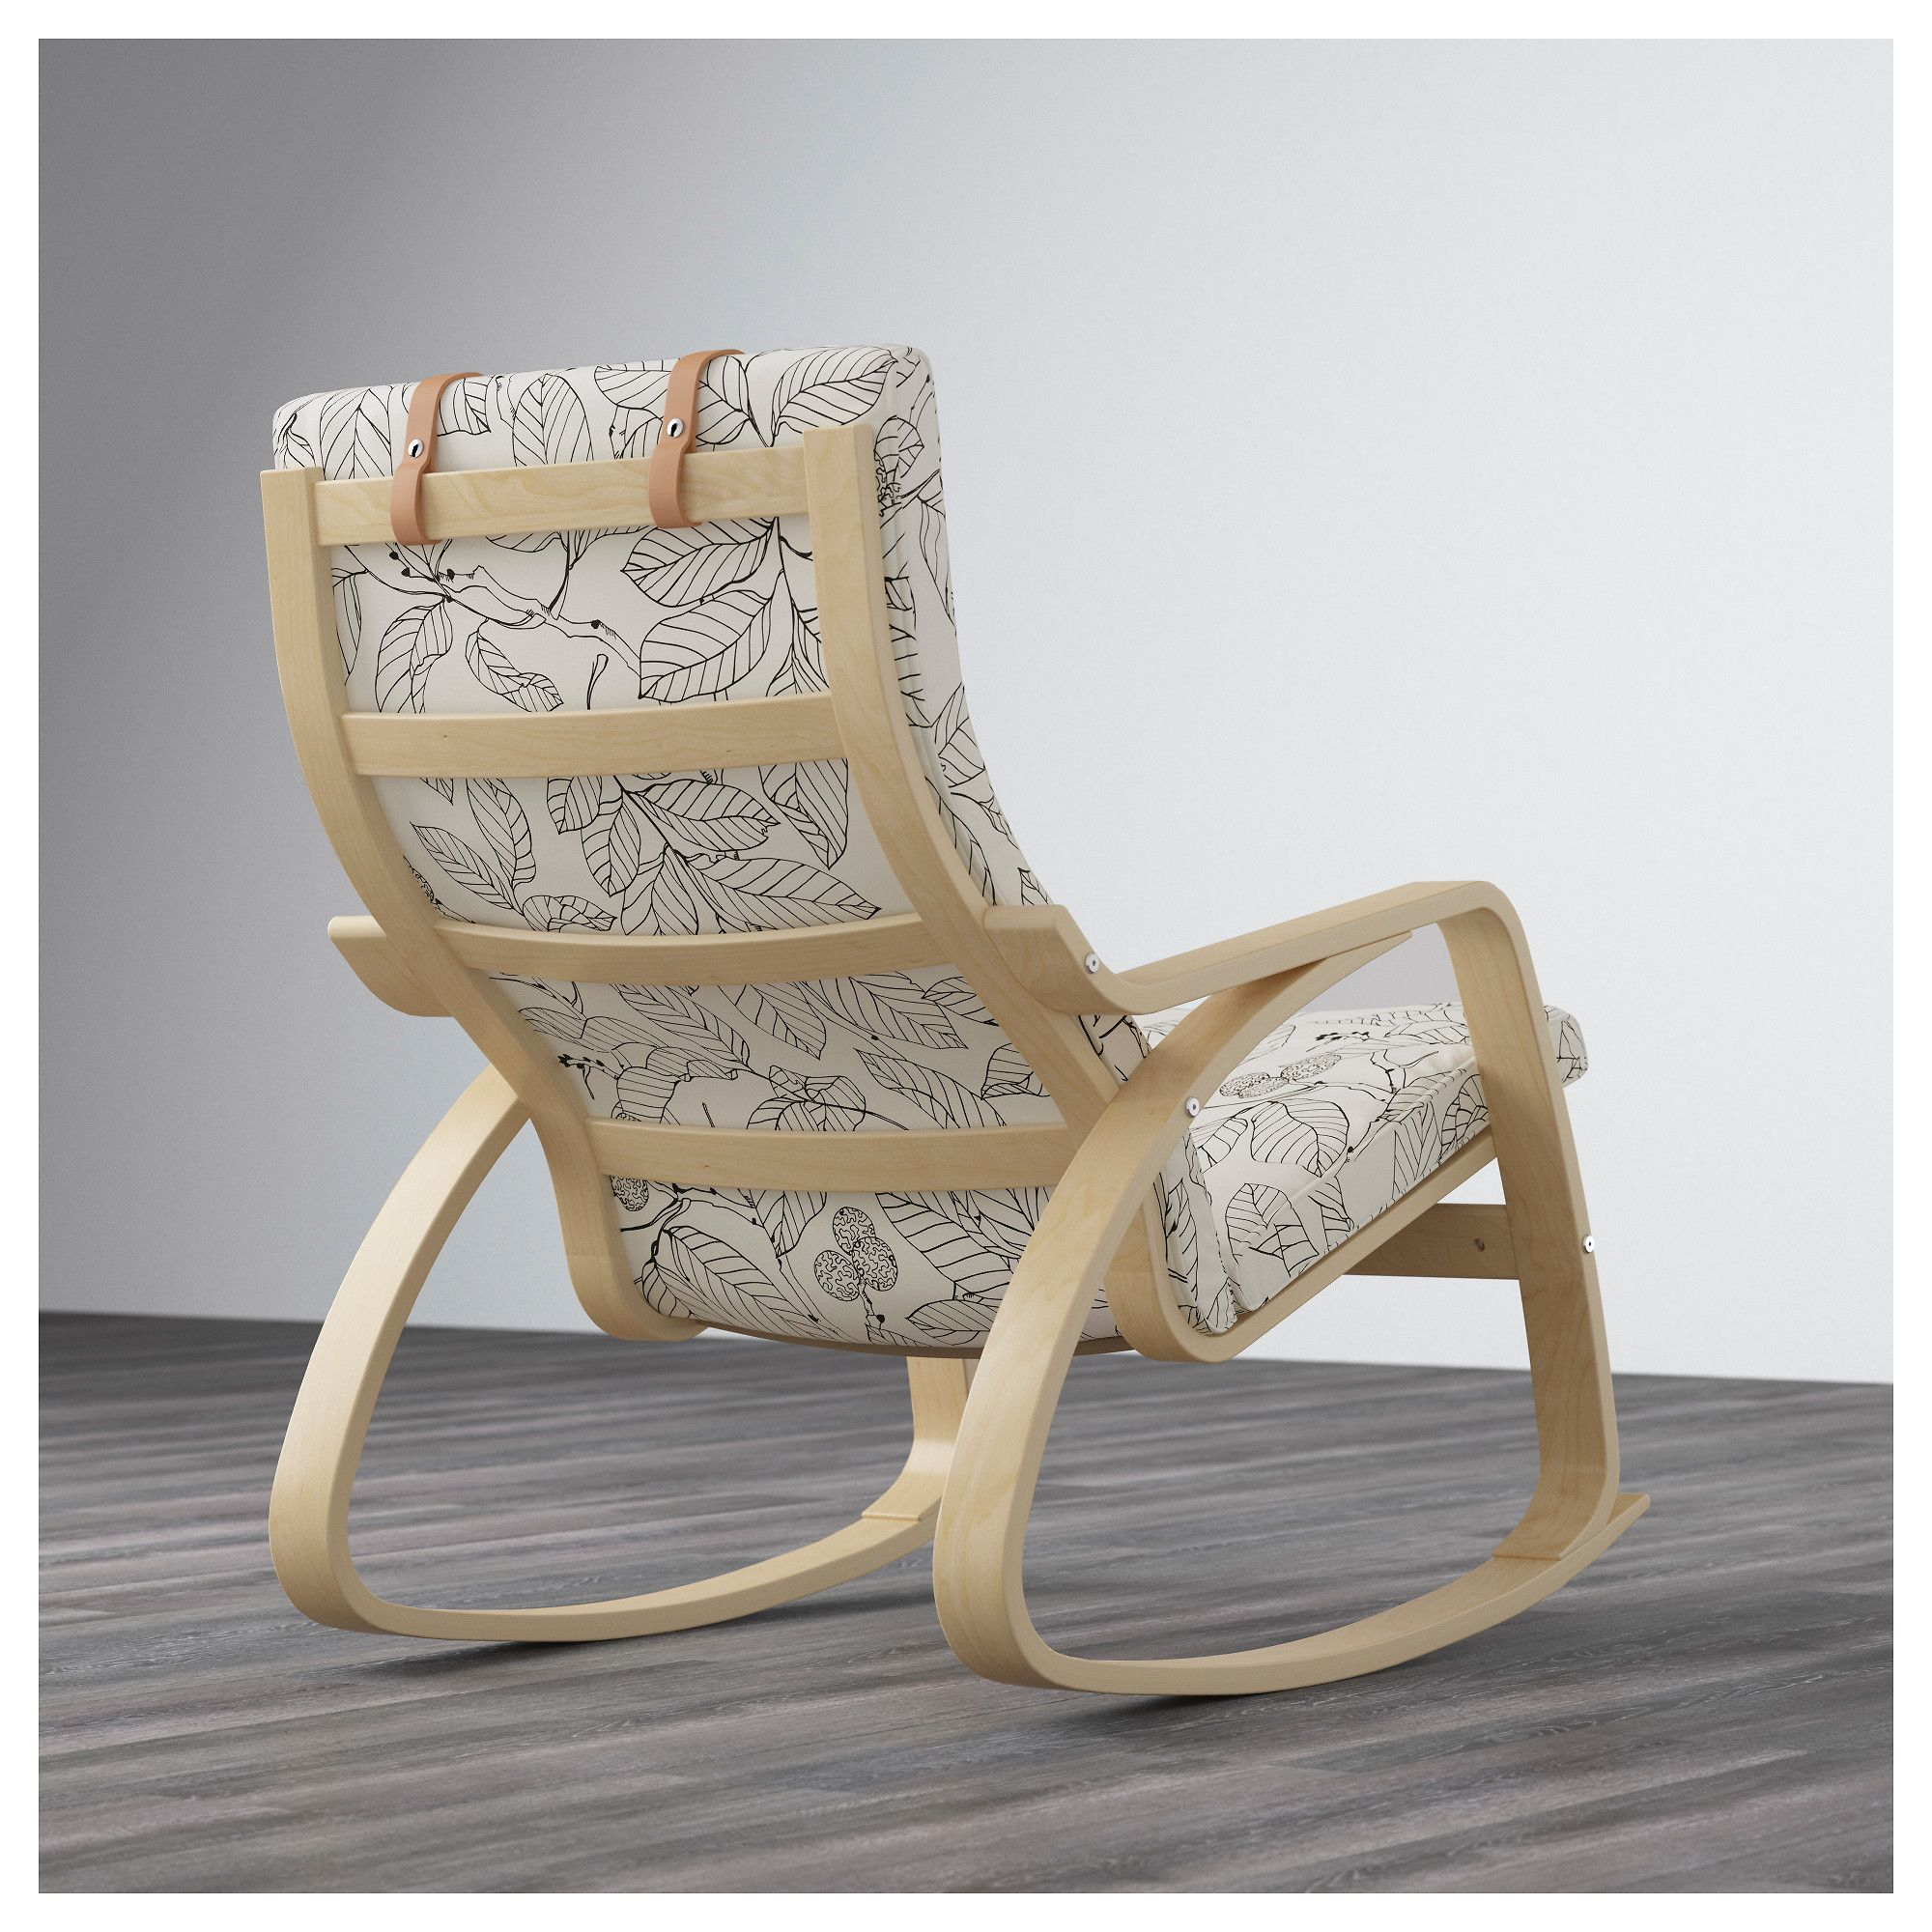 Furniture and Home Furnishings Rocking chair, White